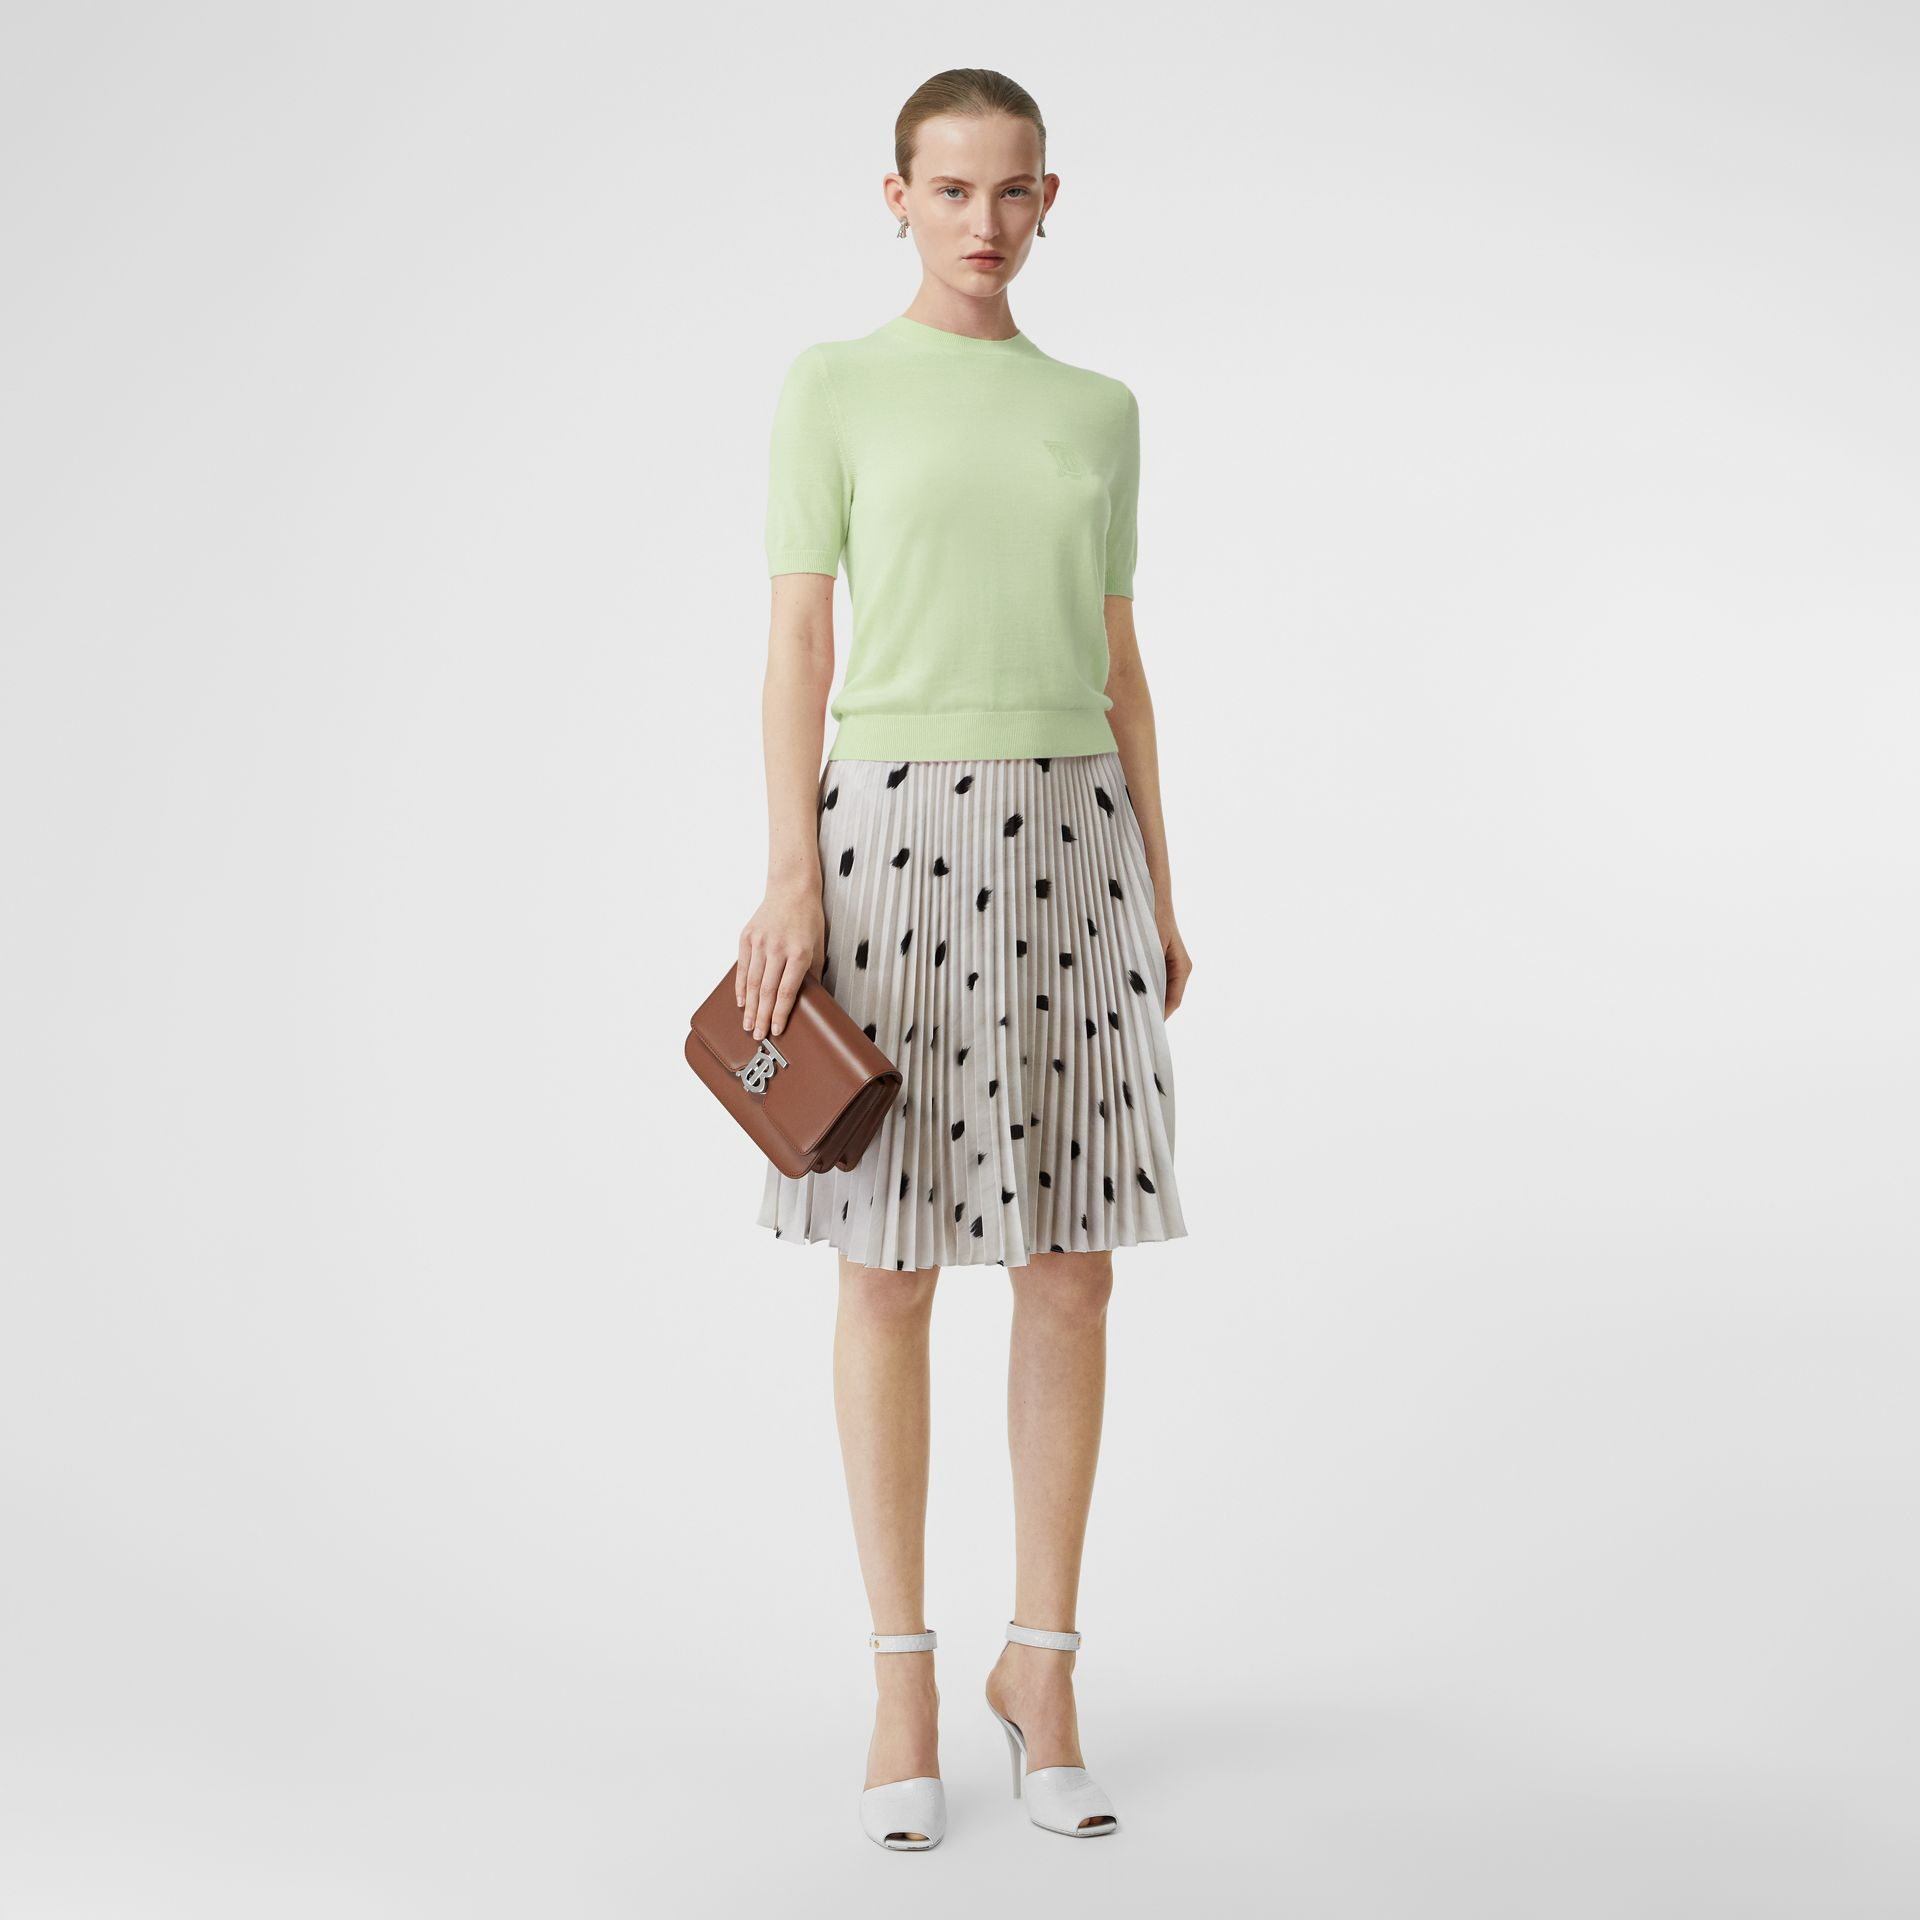 Monogram Motif Cashmere Top in Pistachio - Women | Burberry Singapore - gallery image 0